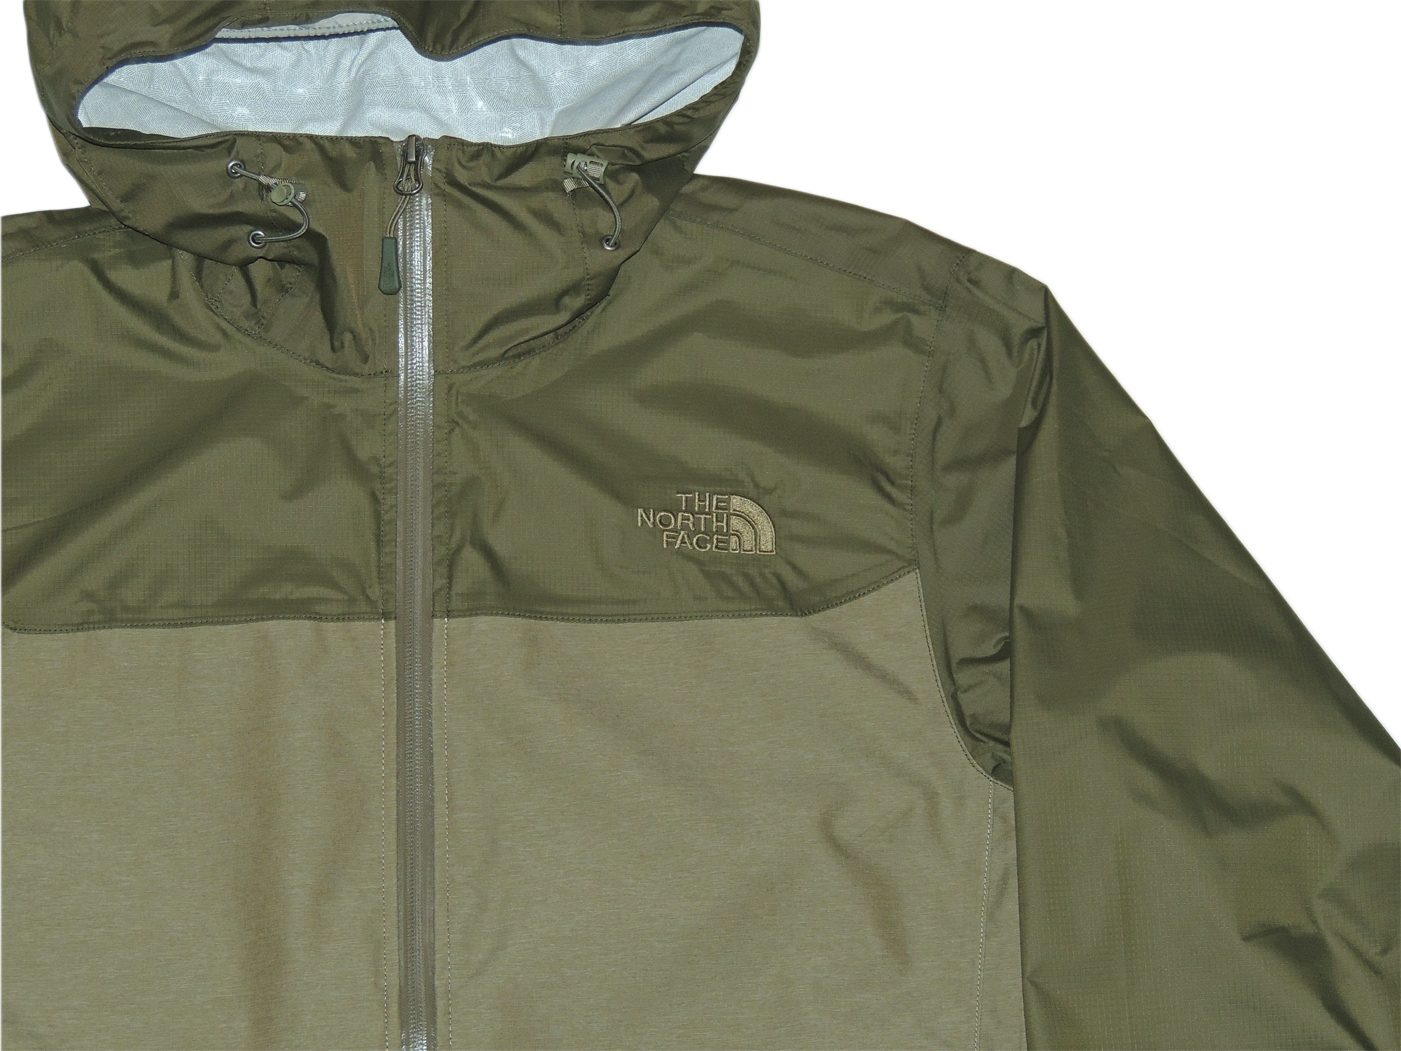 THE NORTH FACE DRYVENT マウンテンパーカー